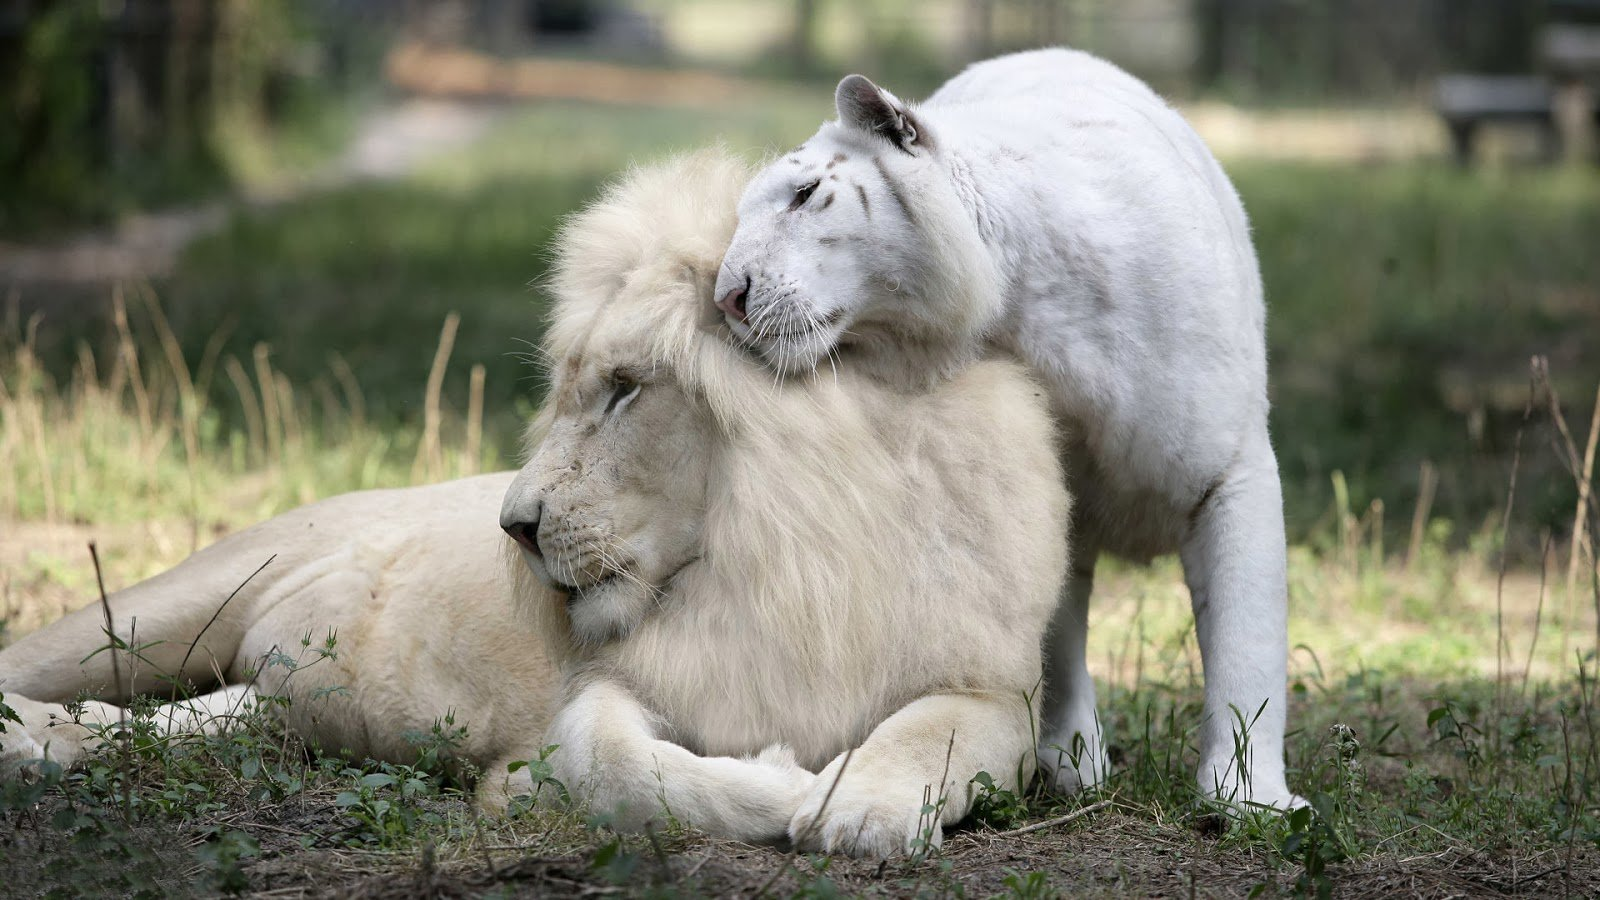 download white lion cubs wallpaper which is under the lion wallpapers 1600x900